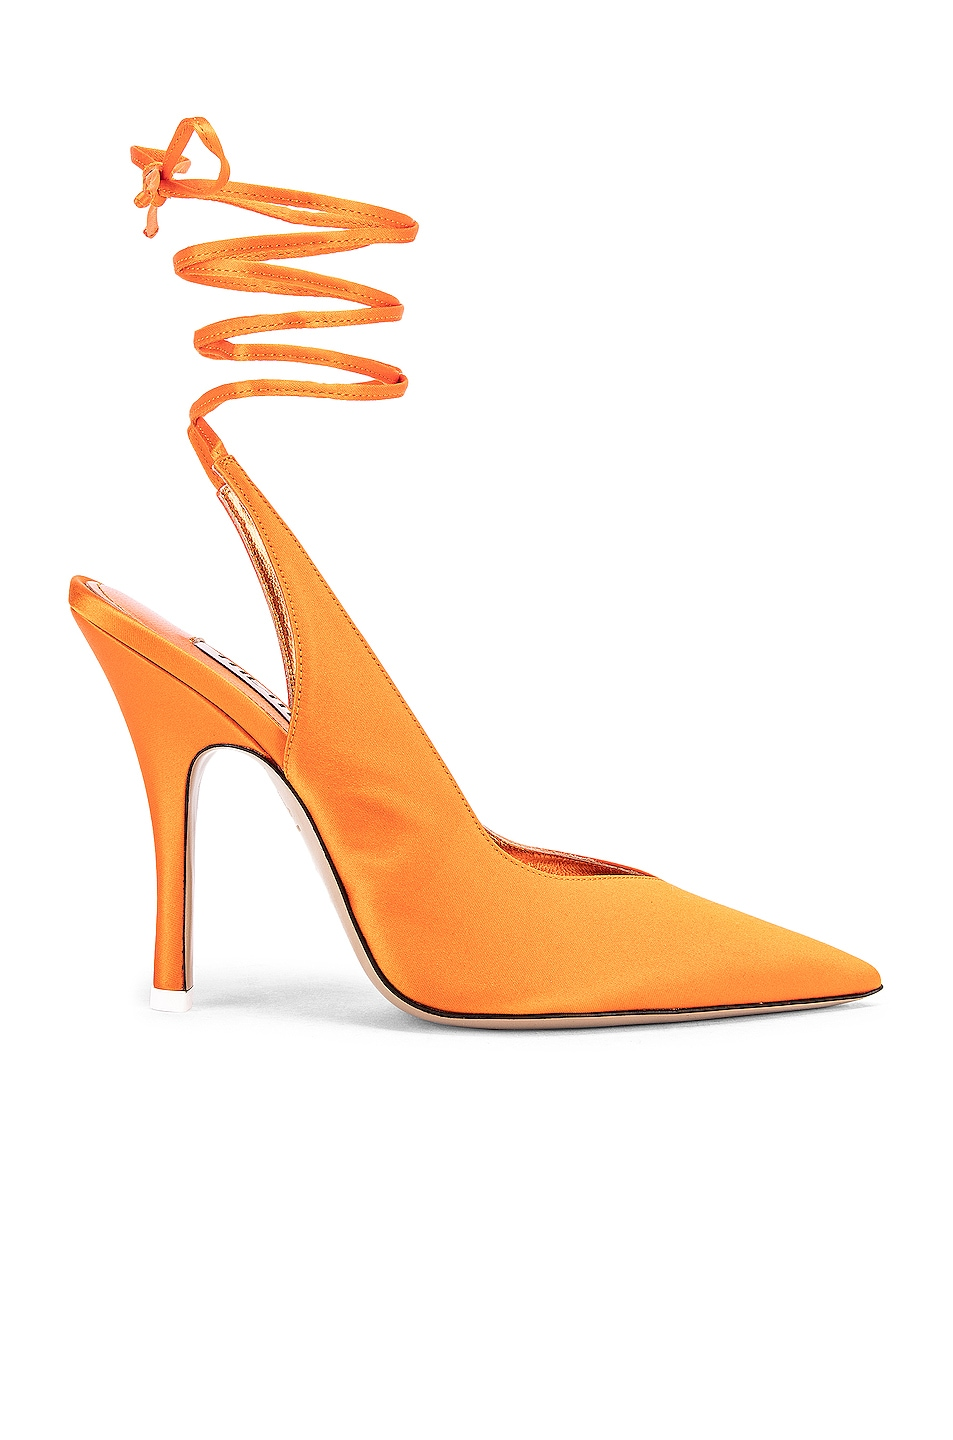 Image 1 of ATTICO High Heel Slingback in Orange